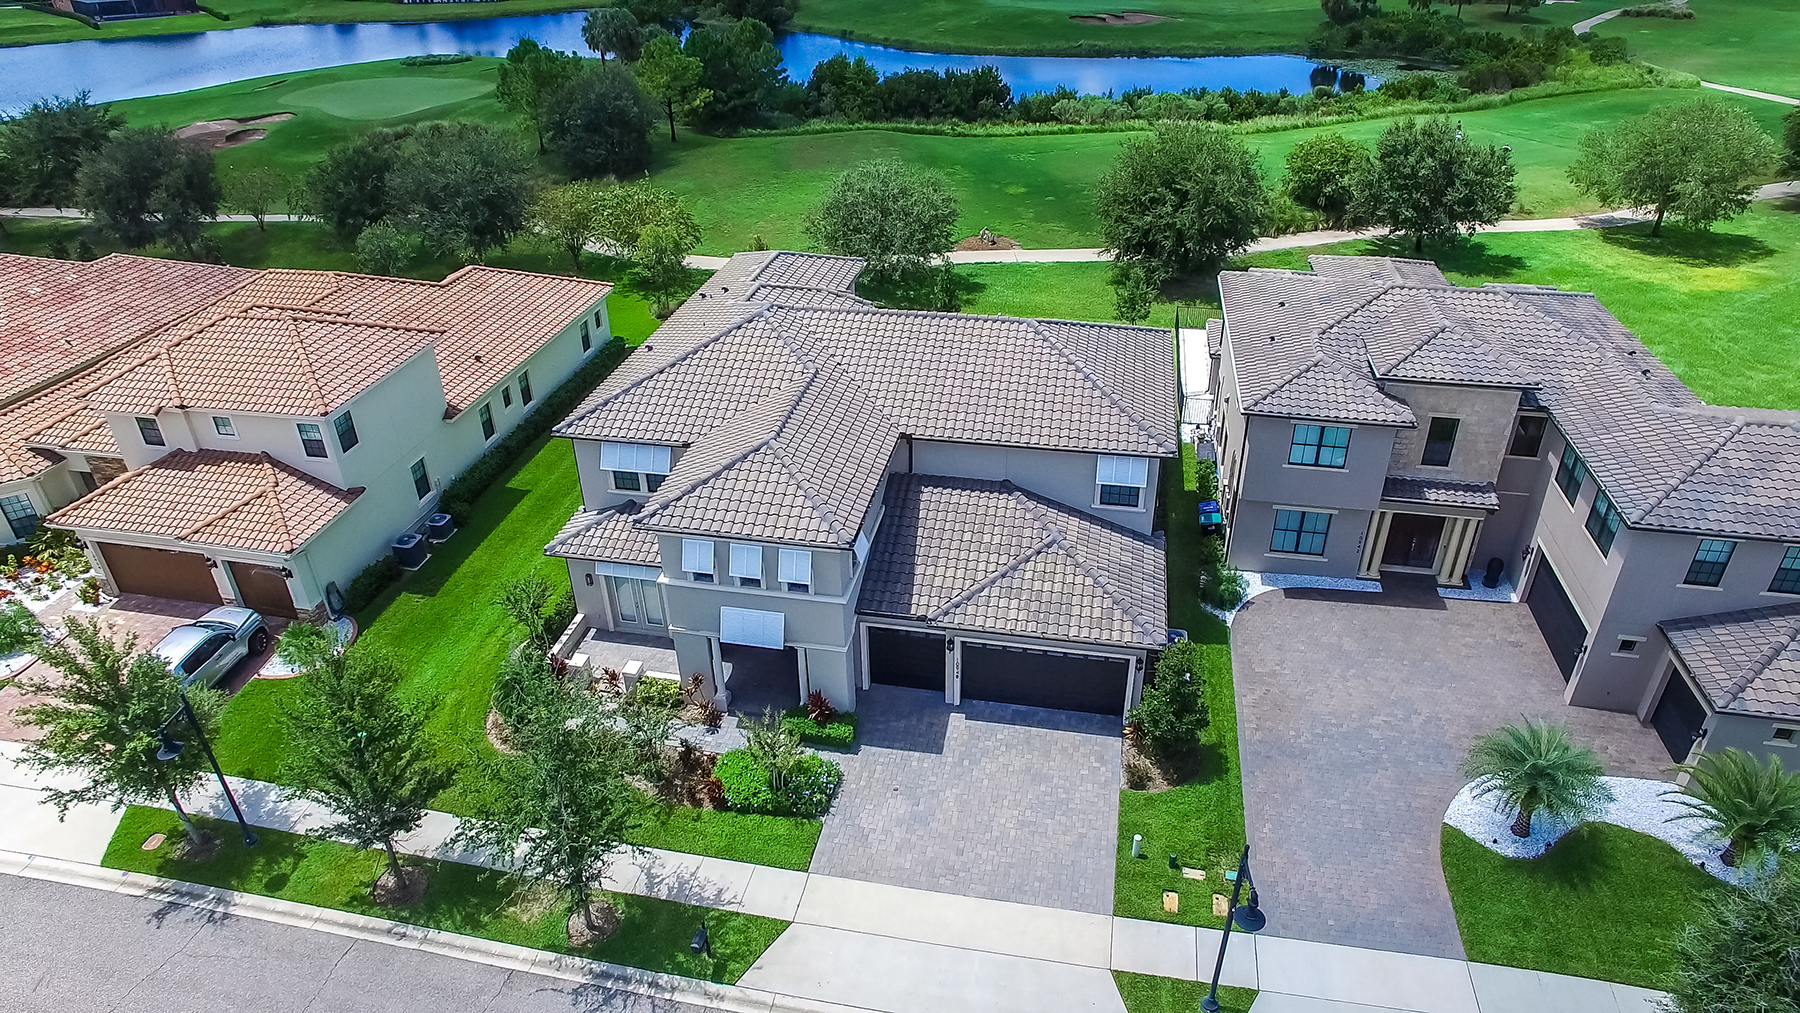 Single Family Home for Sale at LAKE NONA 10948 Mobberley Cir Orlando, Florida, 32832 United States